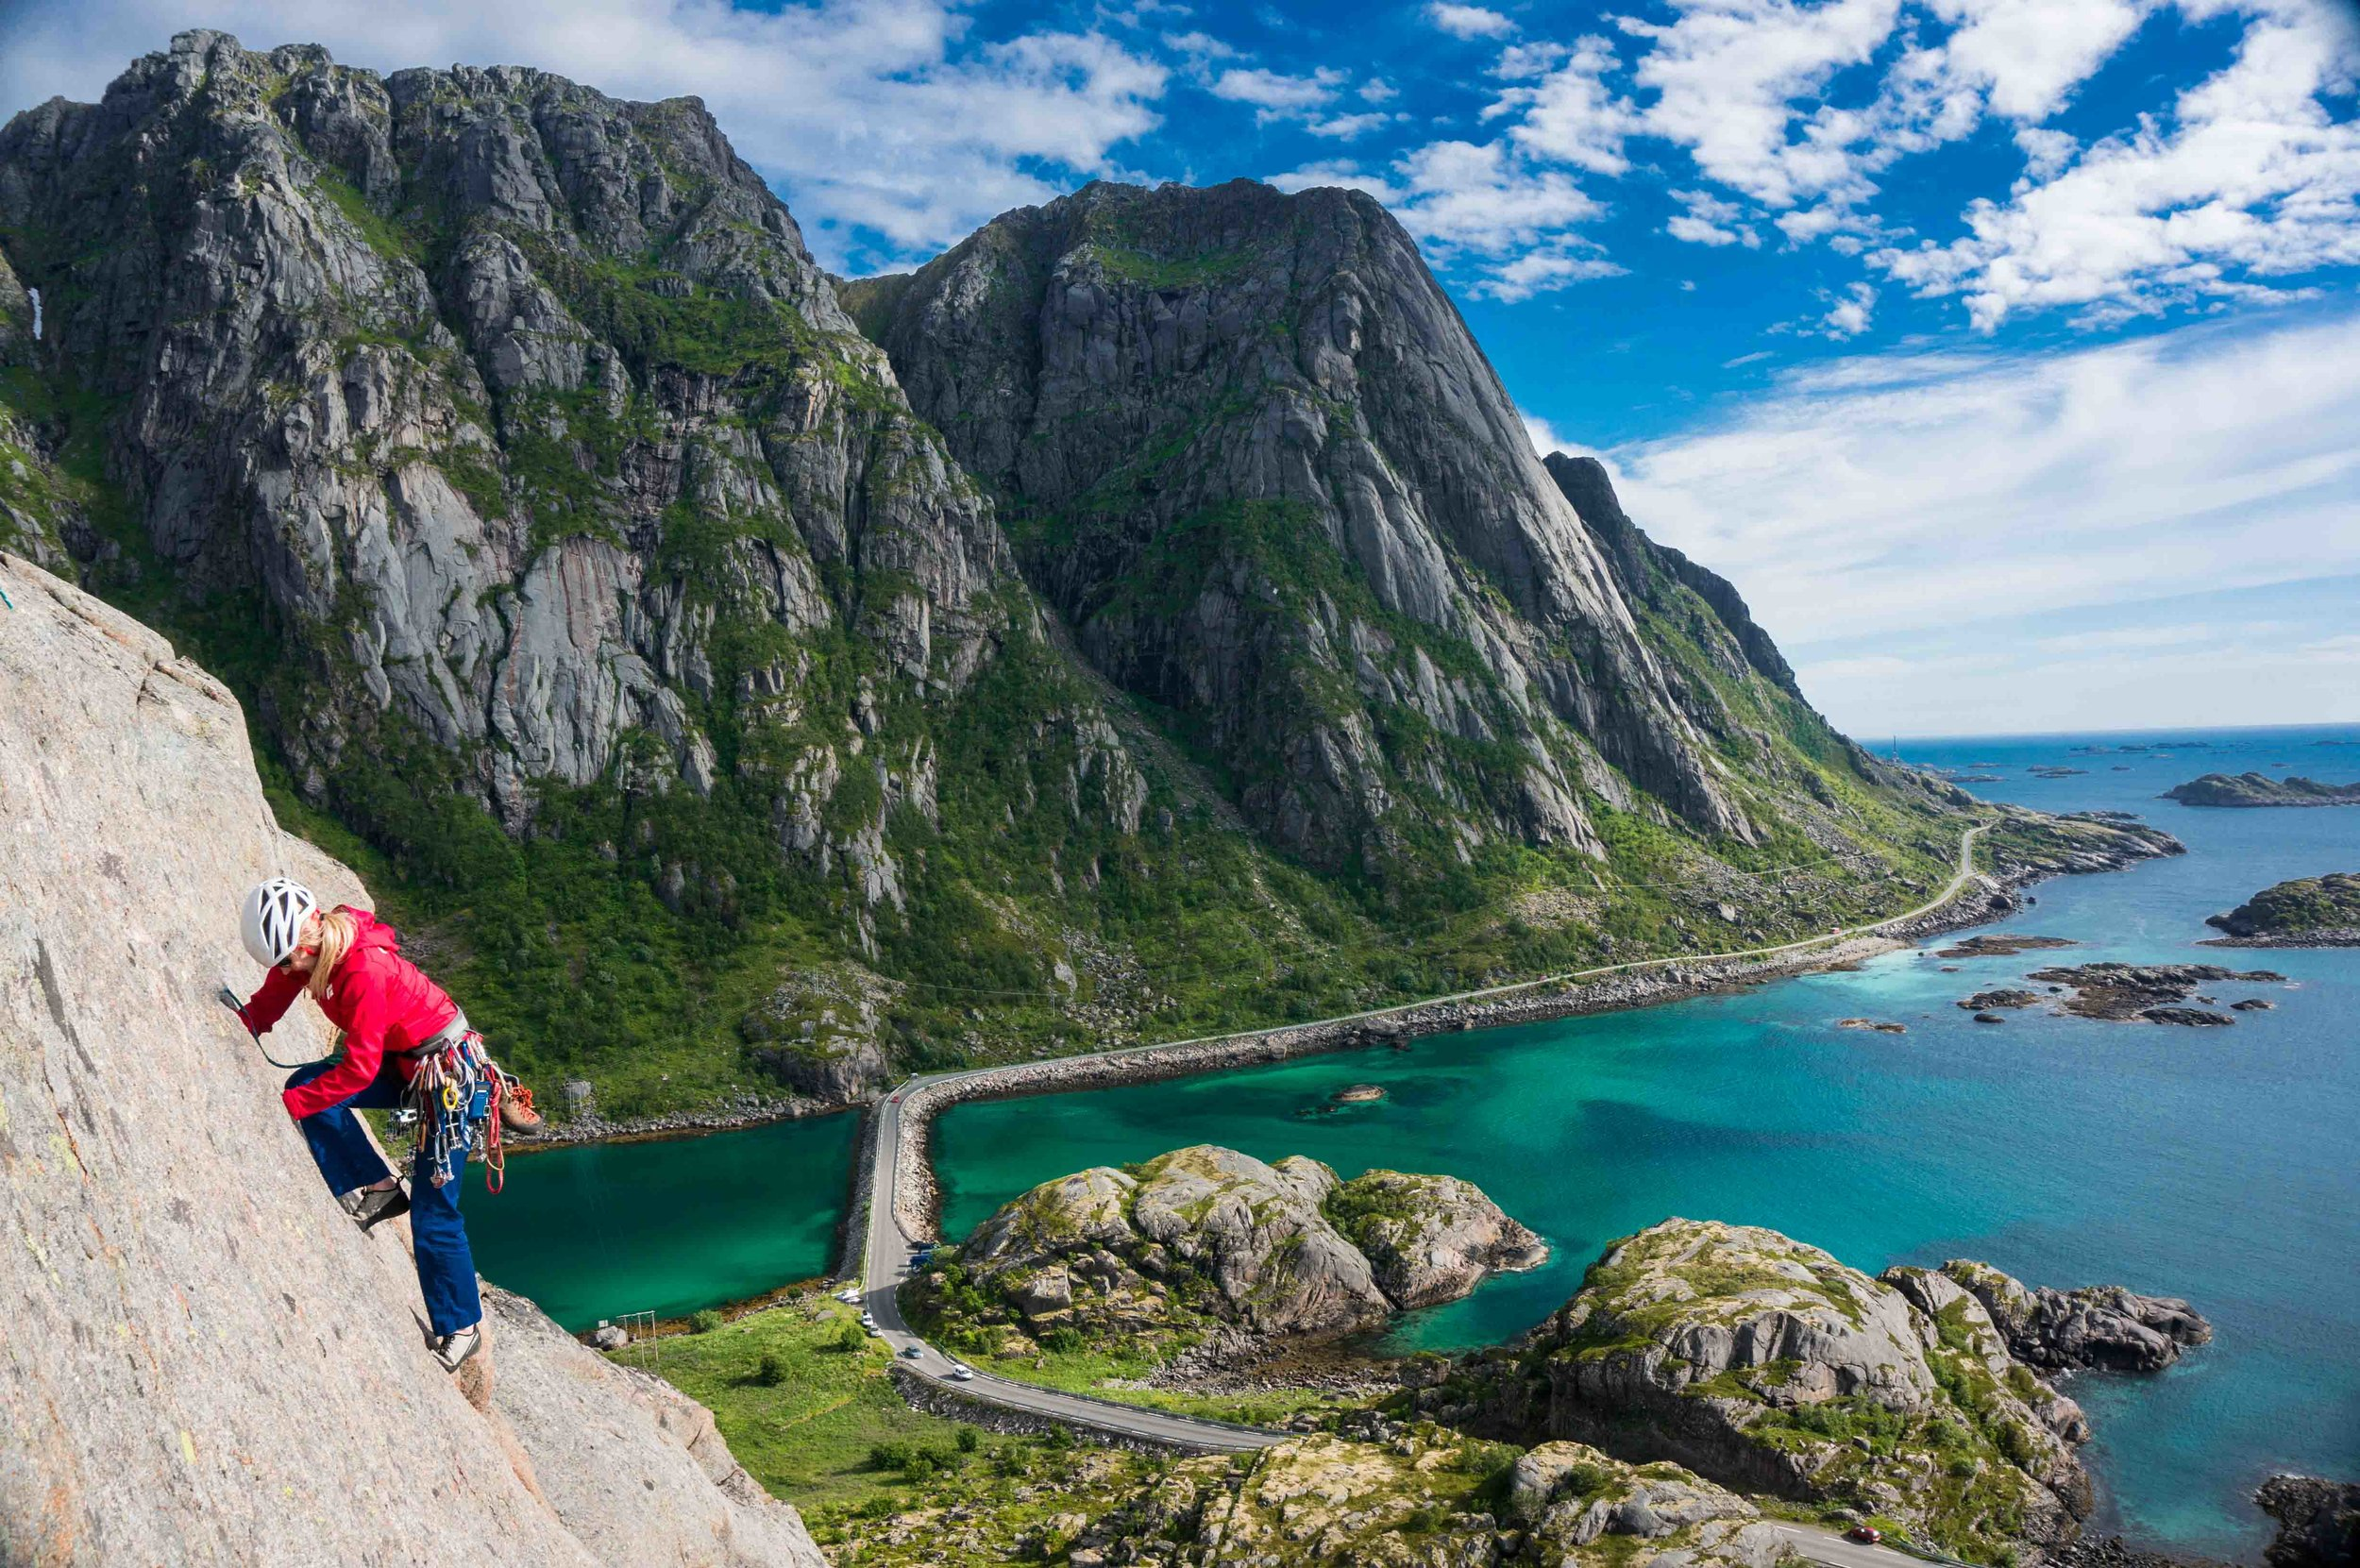 Rock climbing in Lofoton, Norway